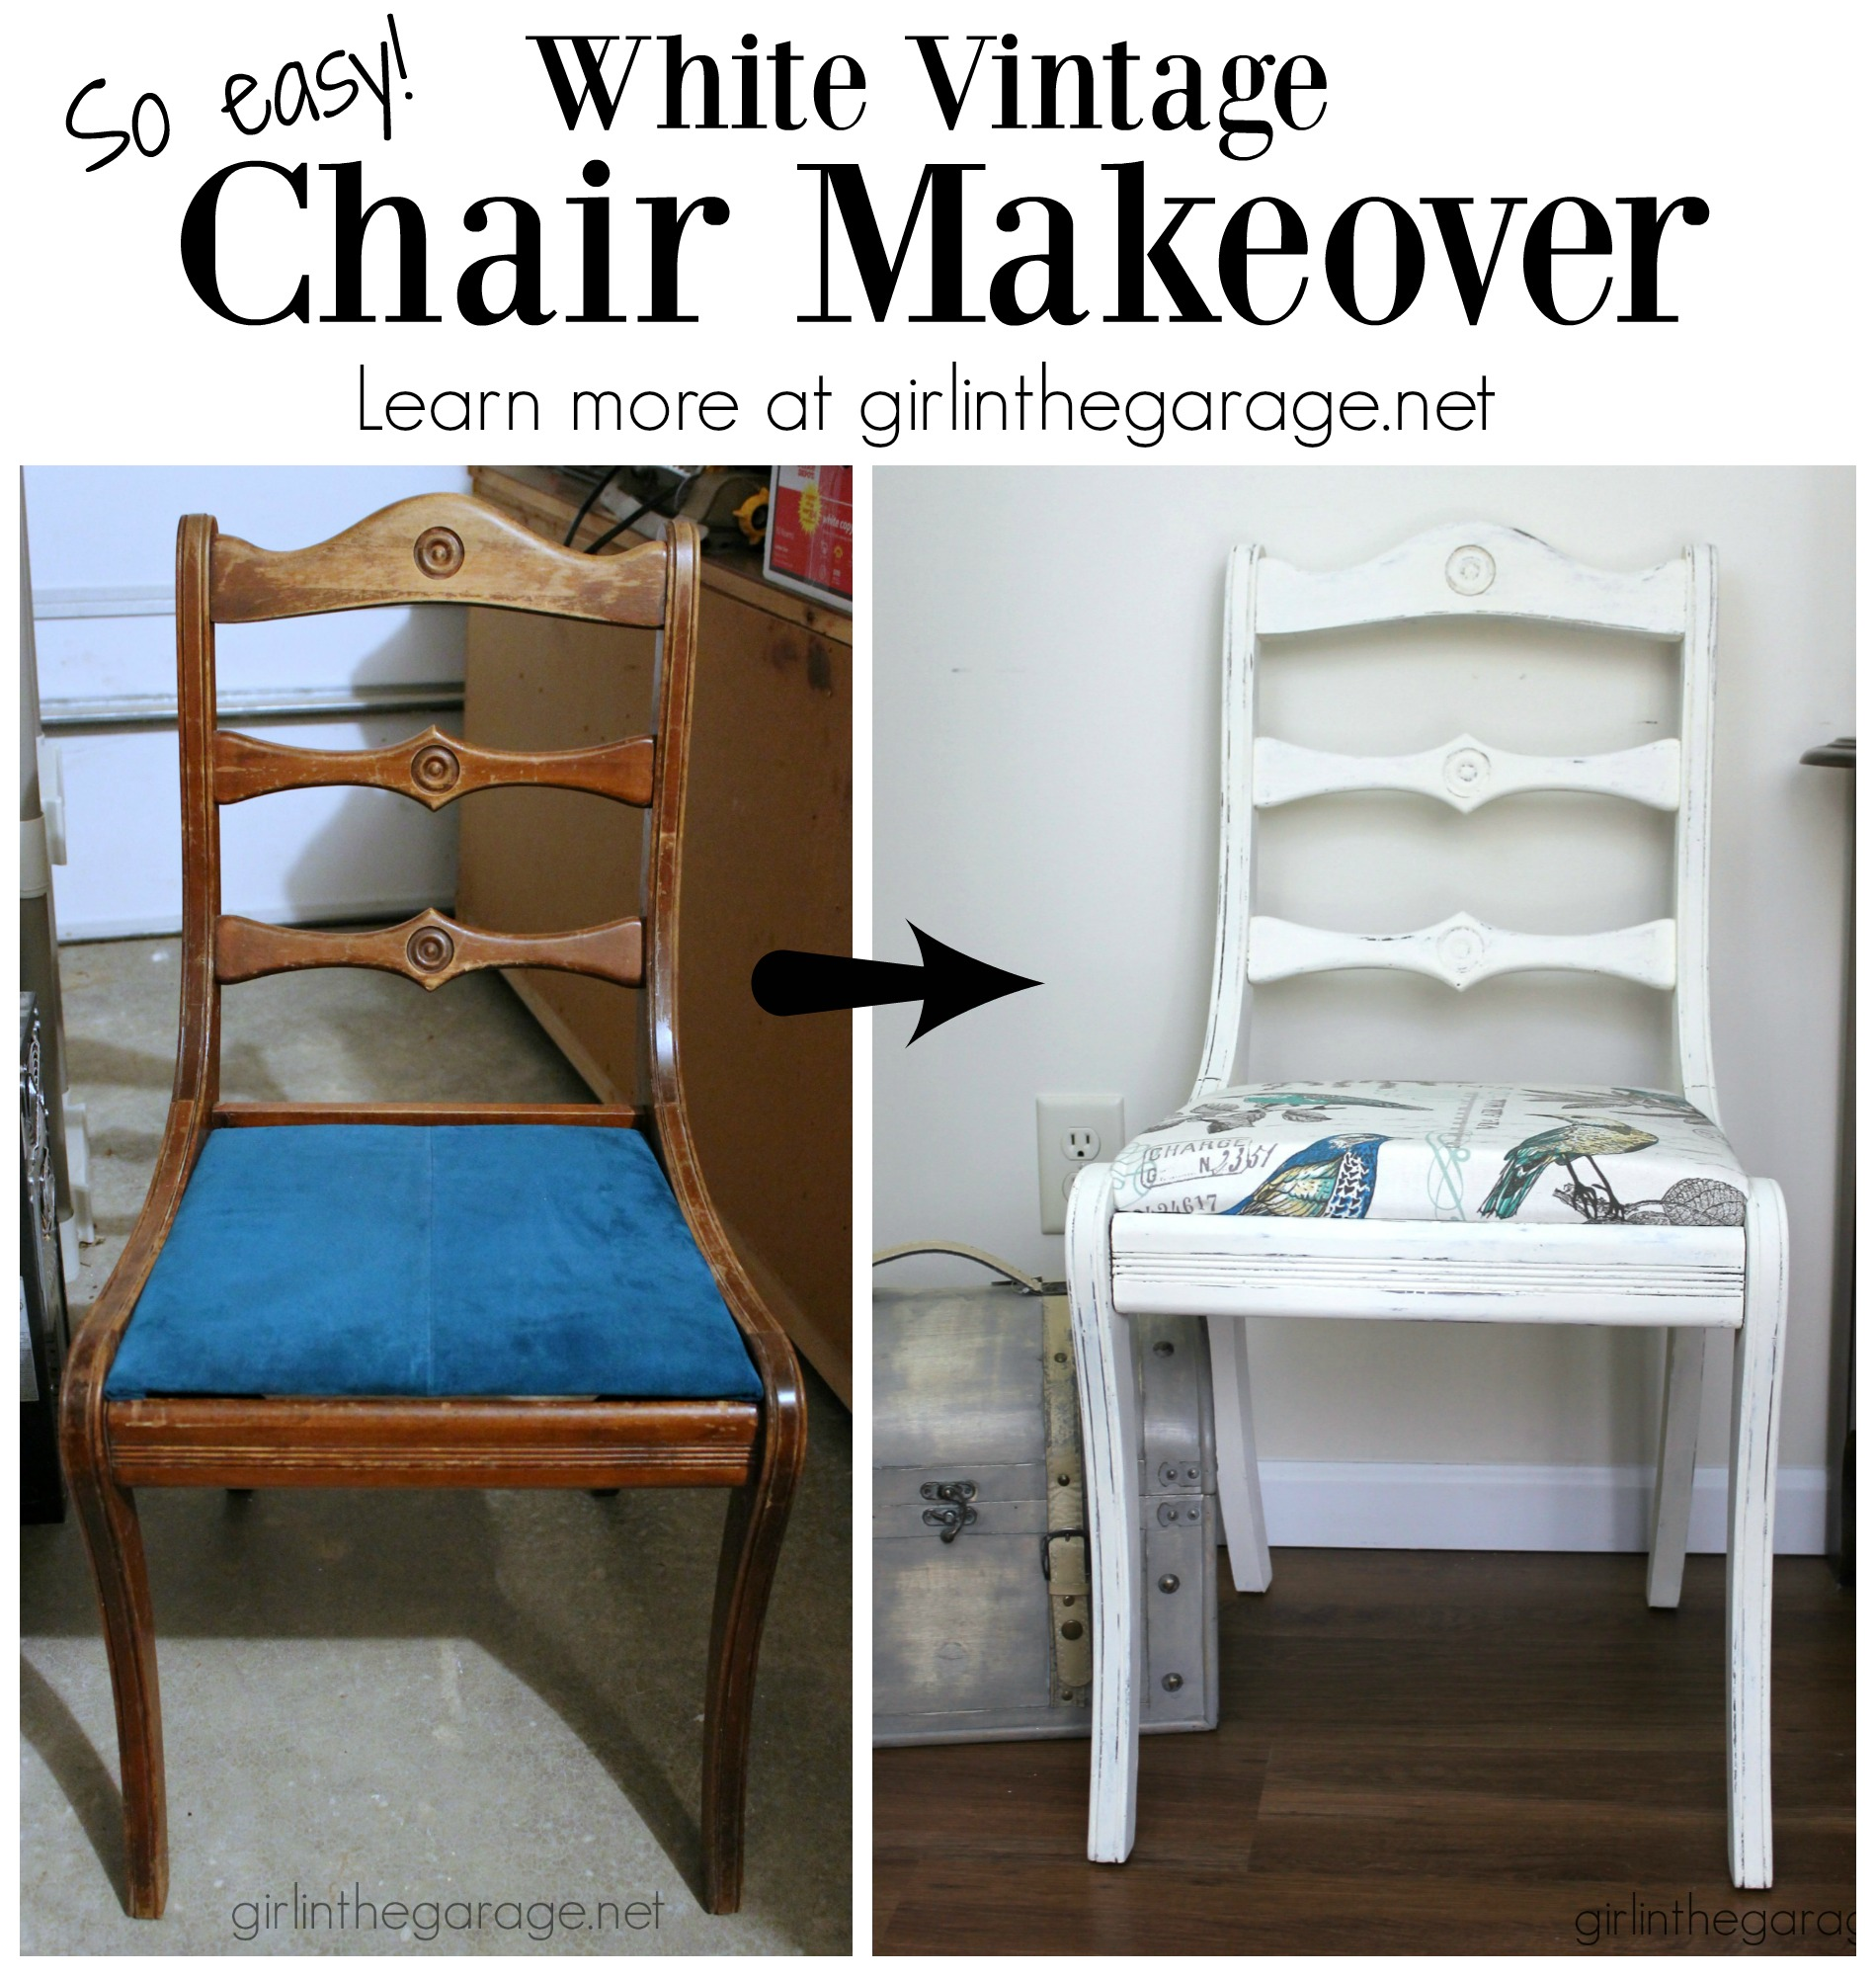 Vintage White Chair Makeover Girl In The Garage